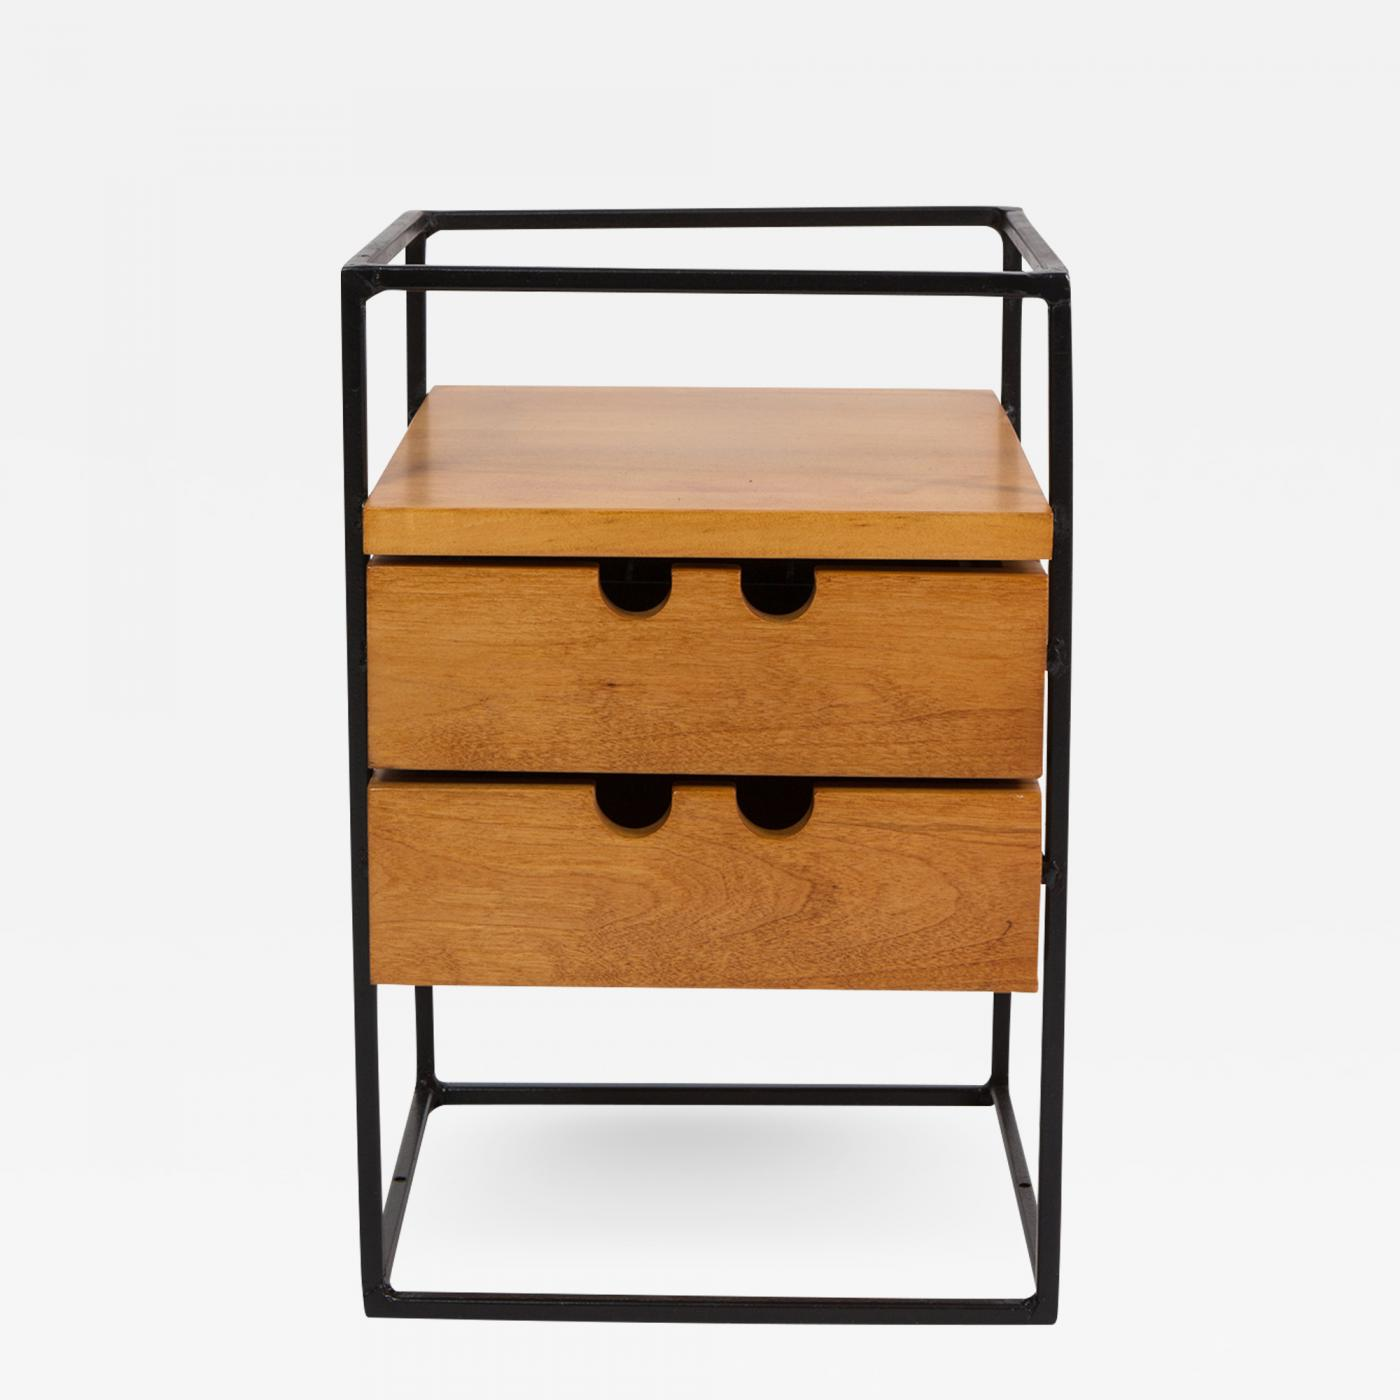 Desk Top Drawers Paul Mccobb Paul Mccobb Mini Desk Top Drawer Unit Planner Group